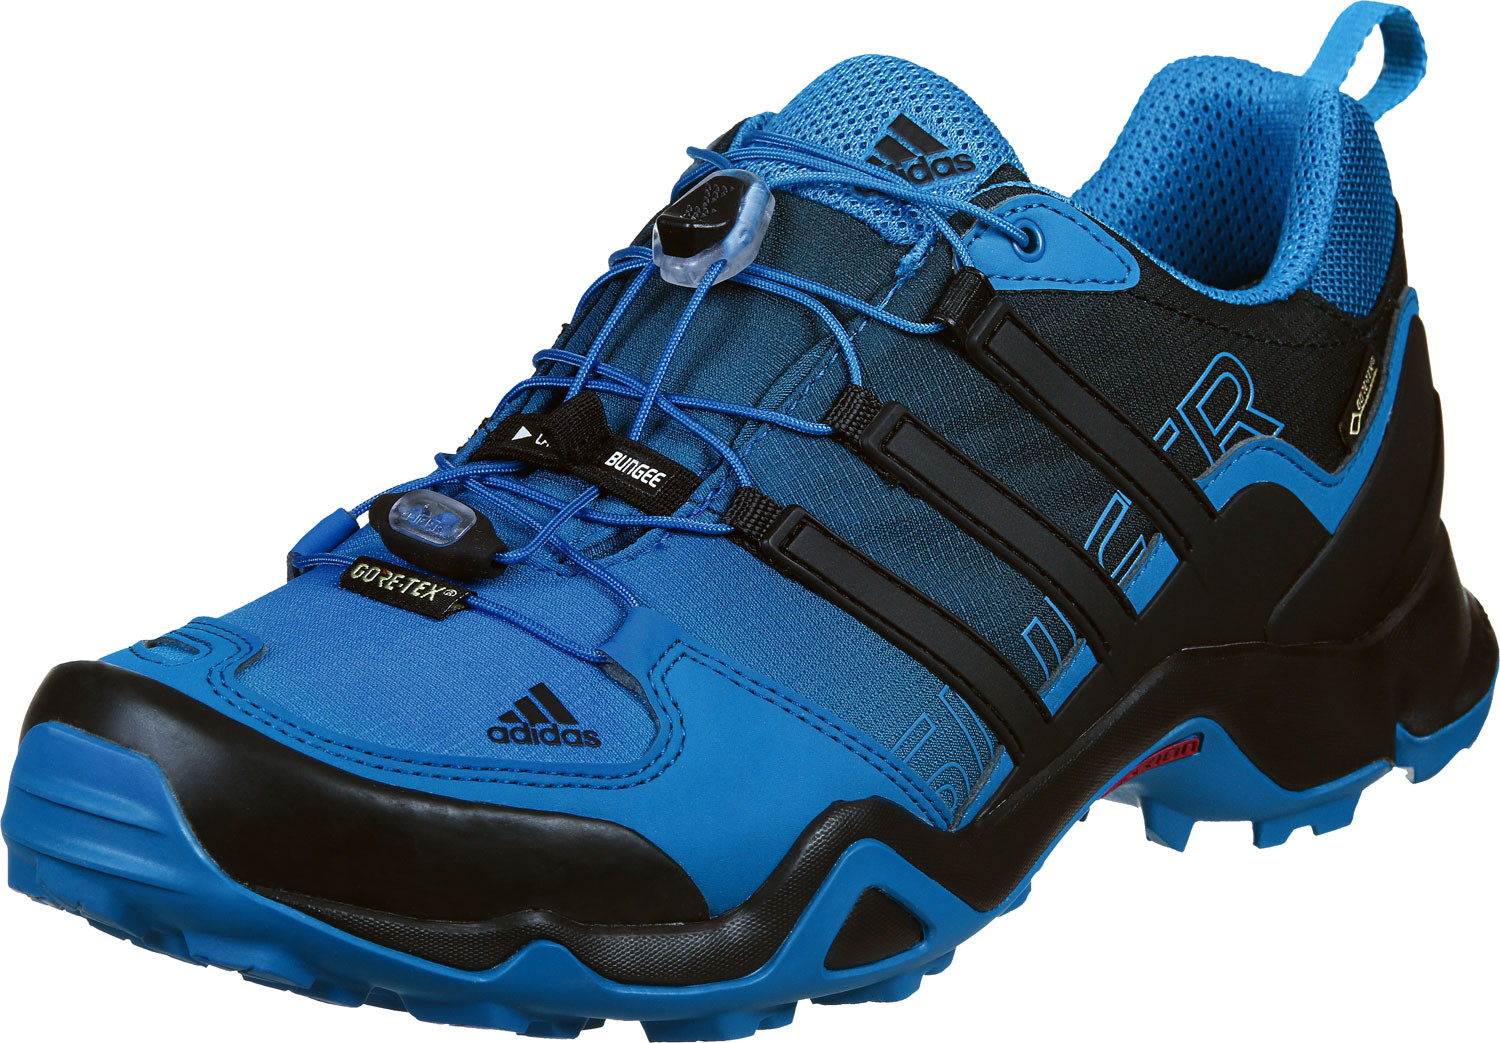 Adidas Terrex Swift R Gtx Hombre Perfecto Adidas Terrex Swift R Gtx Hiking Shoes Blue Black Of 47  Magnífica Adidas Terrex Swift R Gtx Hombre